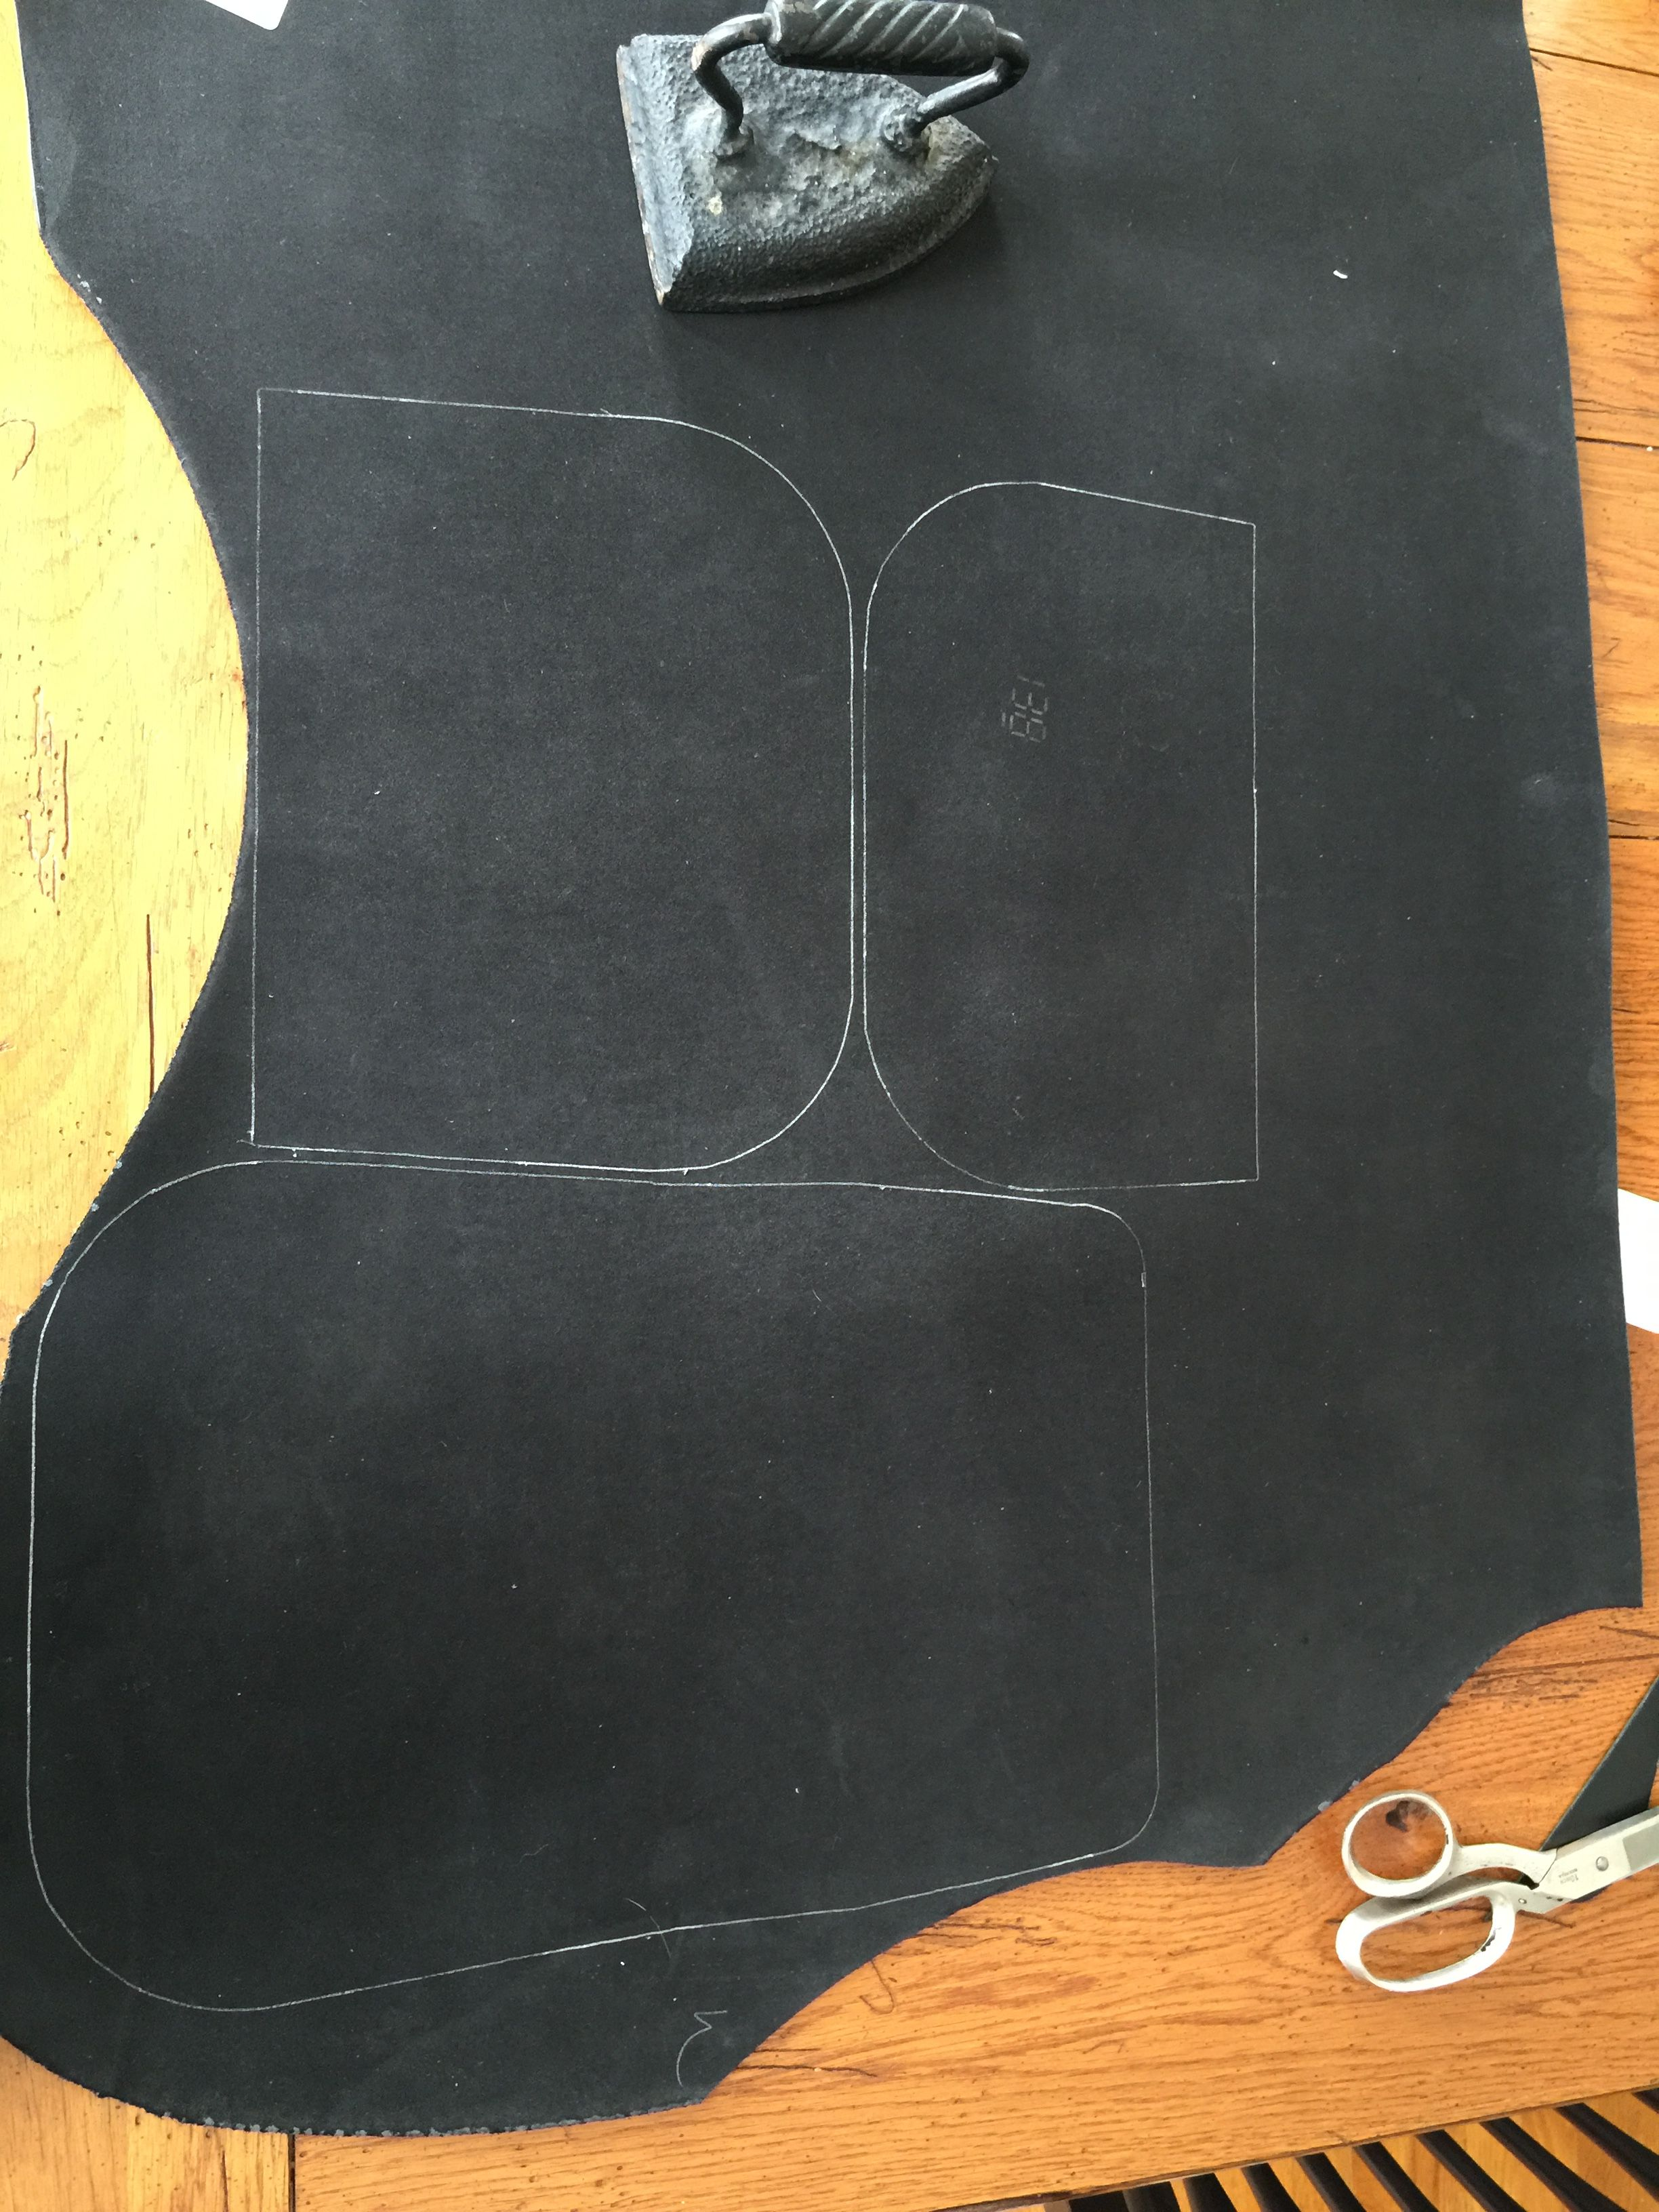 Drawing out the parts for a shoulder bag, nice black leather I got on sale. #leather #Raleigh #handbag #handcrafted #purse #wallet